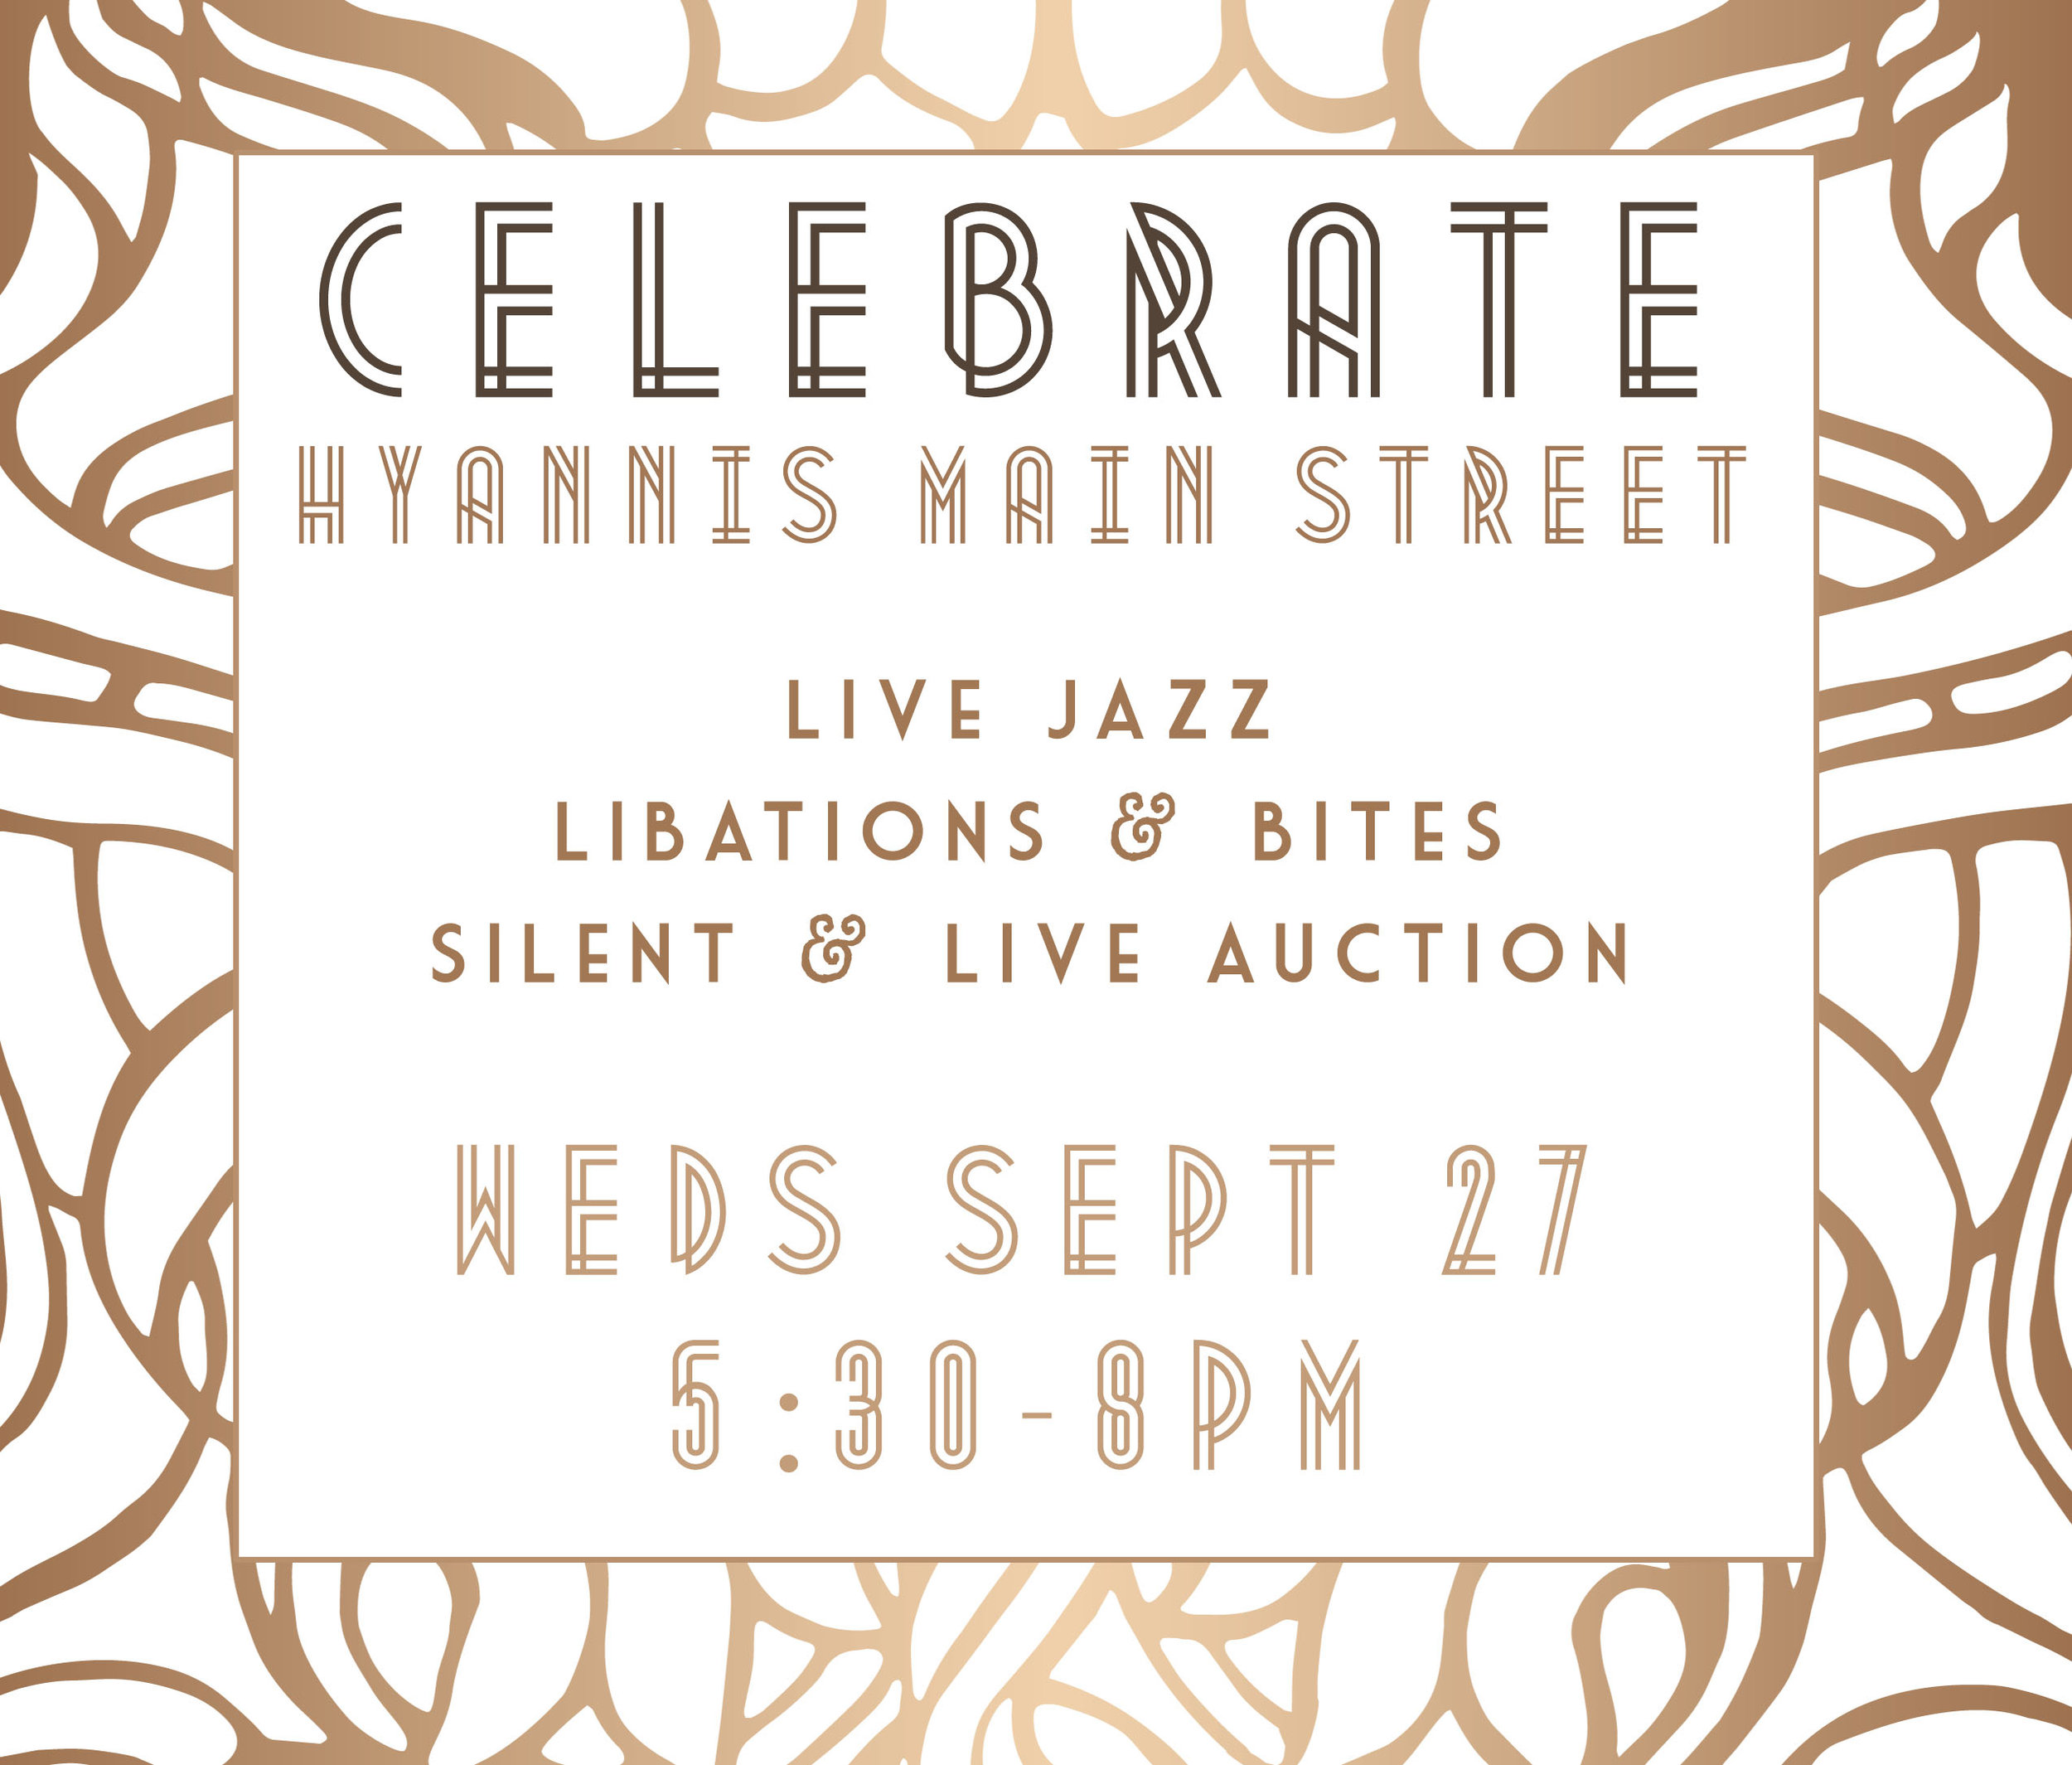 Celebrate Hyannis Main Street at their annual fundraiser at The West End! Live Jazz, Snacks & Libations plus an awesome live & silent auction!  Festive dress encouraged... think Roarin' 20's!  $10